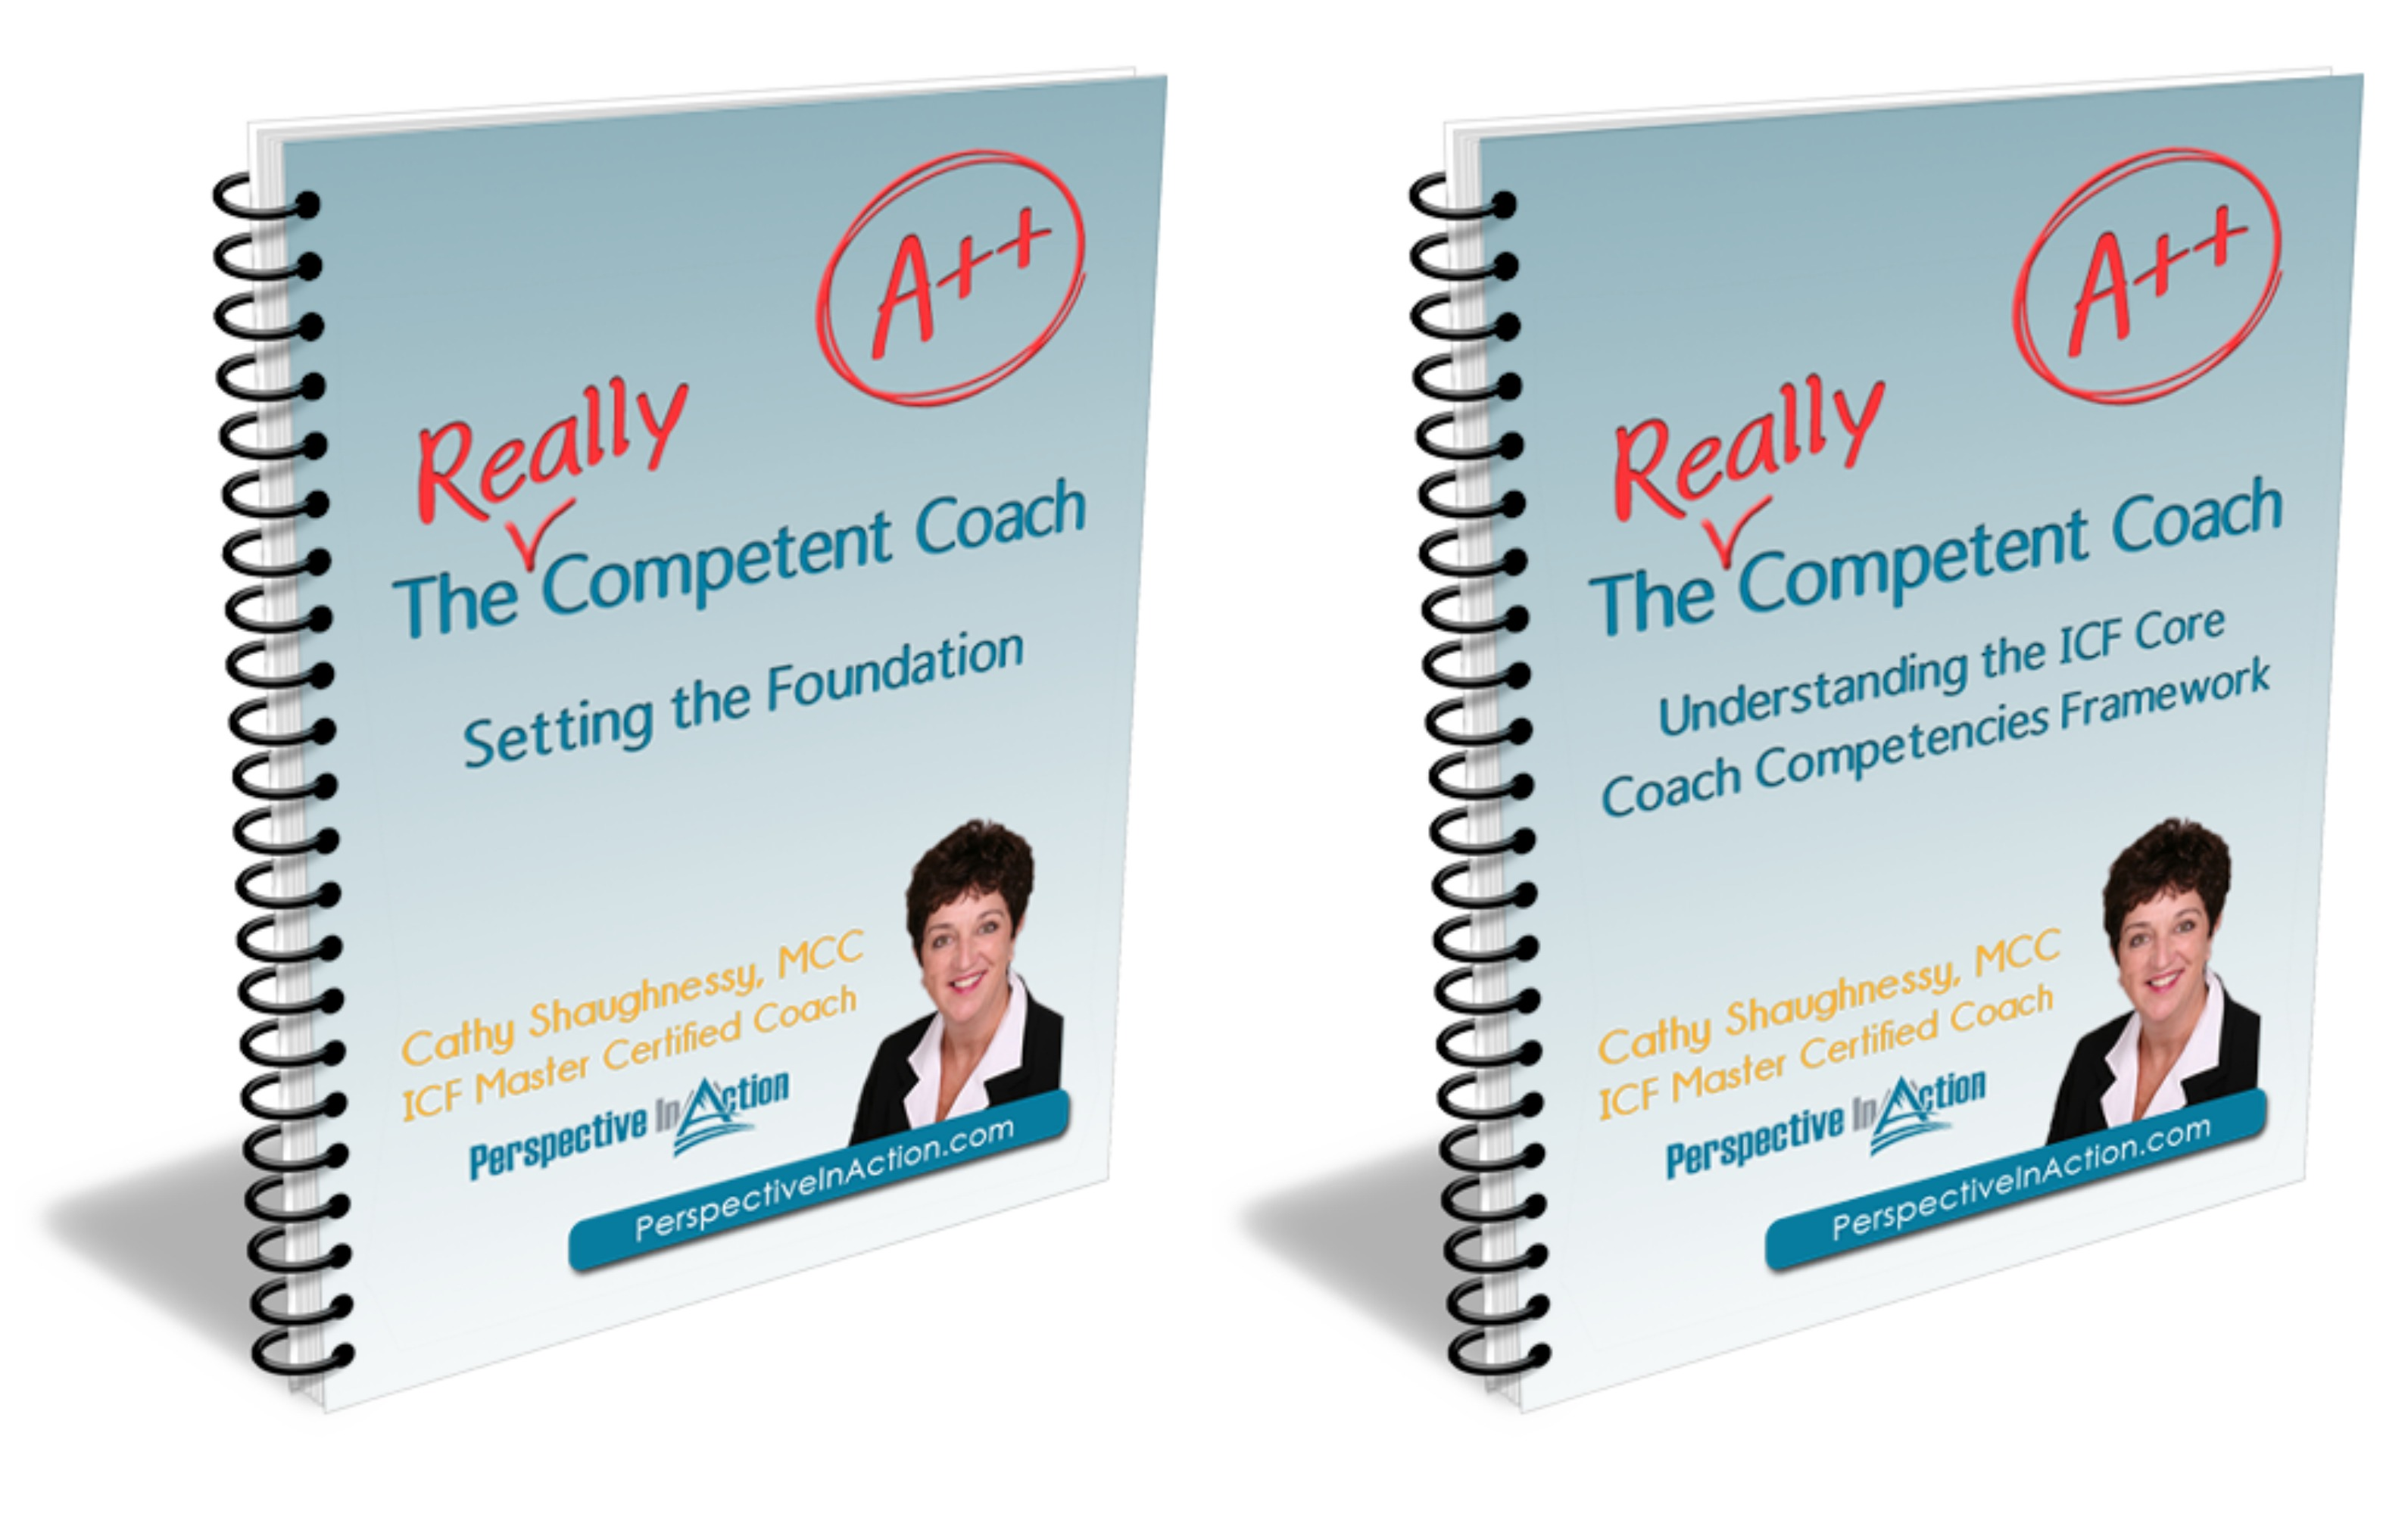 The Really Competent Coach: Setting the Foundation, The Really Competent Coach: Understanding the ICF Coach Core Competencies and The Really Competent Coach: Co-Creating the Relationship